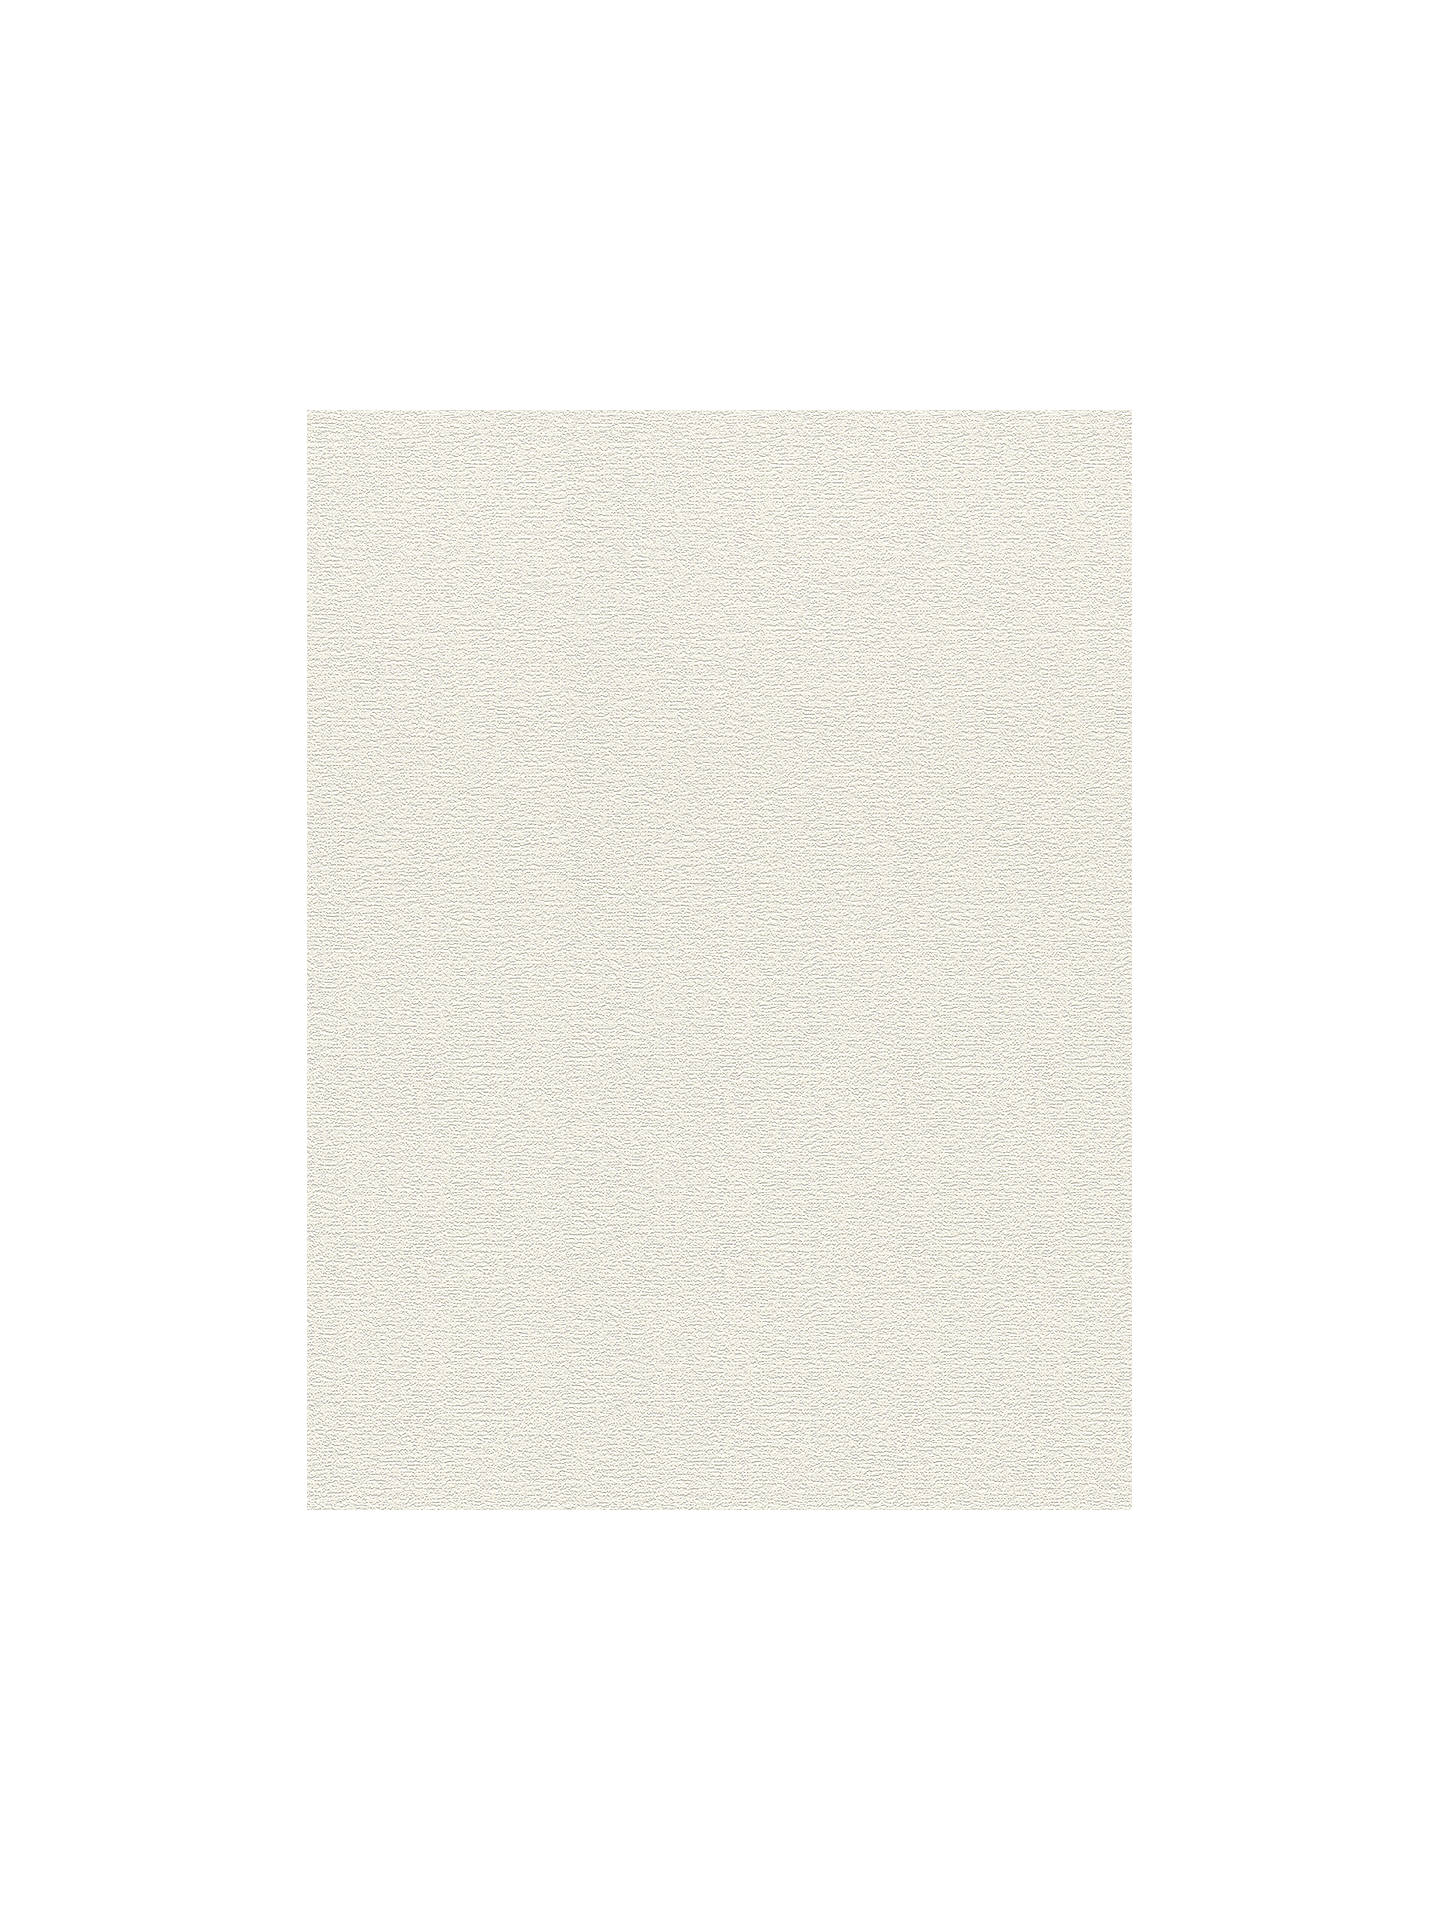 Buy Galerie Light Textured Wallpaper, 800456 Online at johnlewis.com